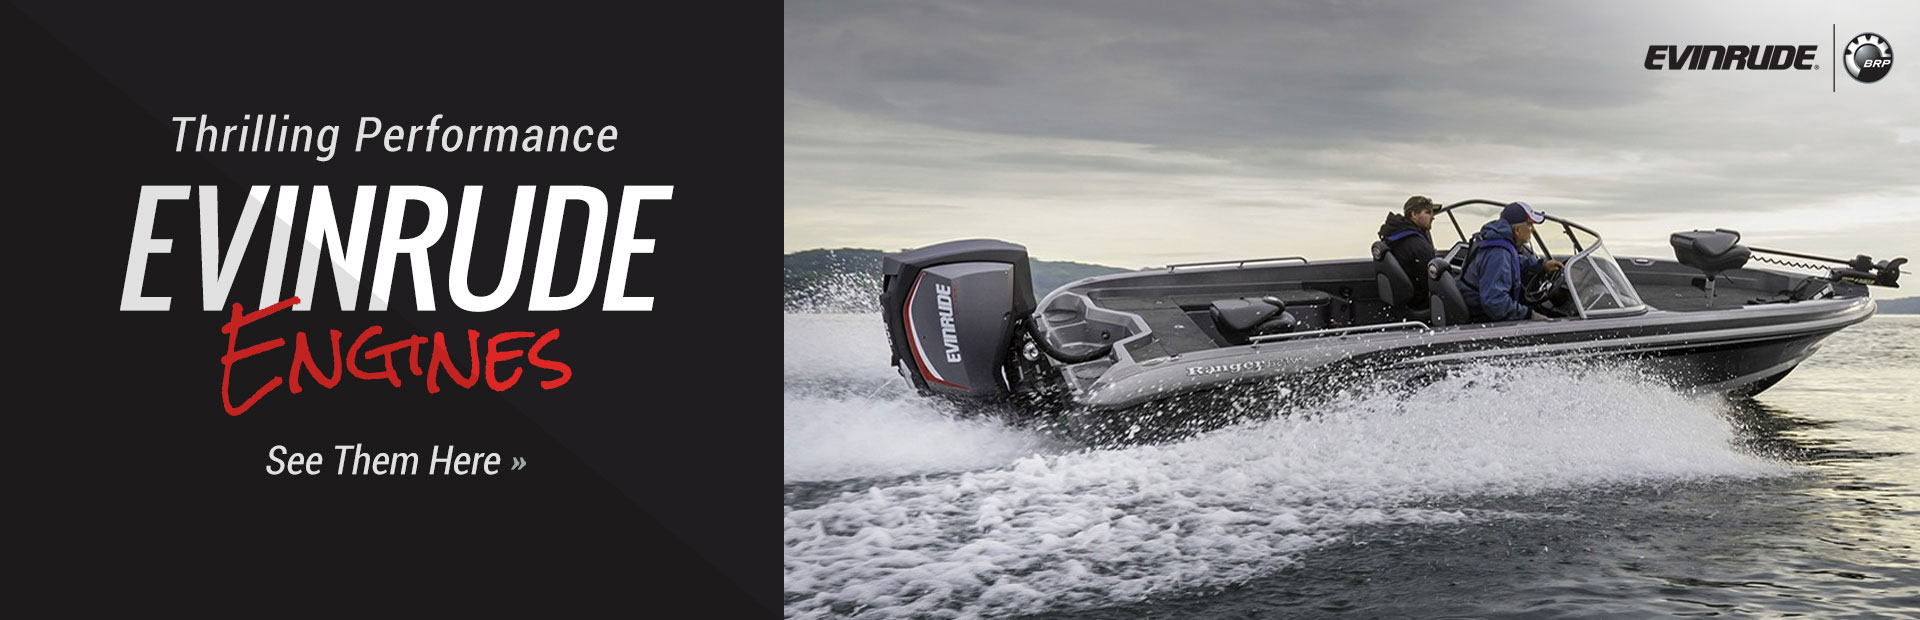 Evinrude Engines: Click here to view the models.